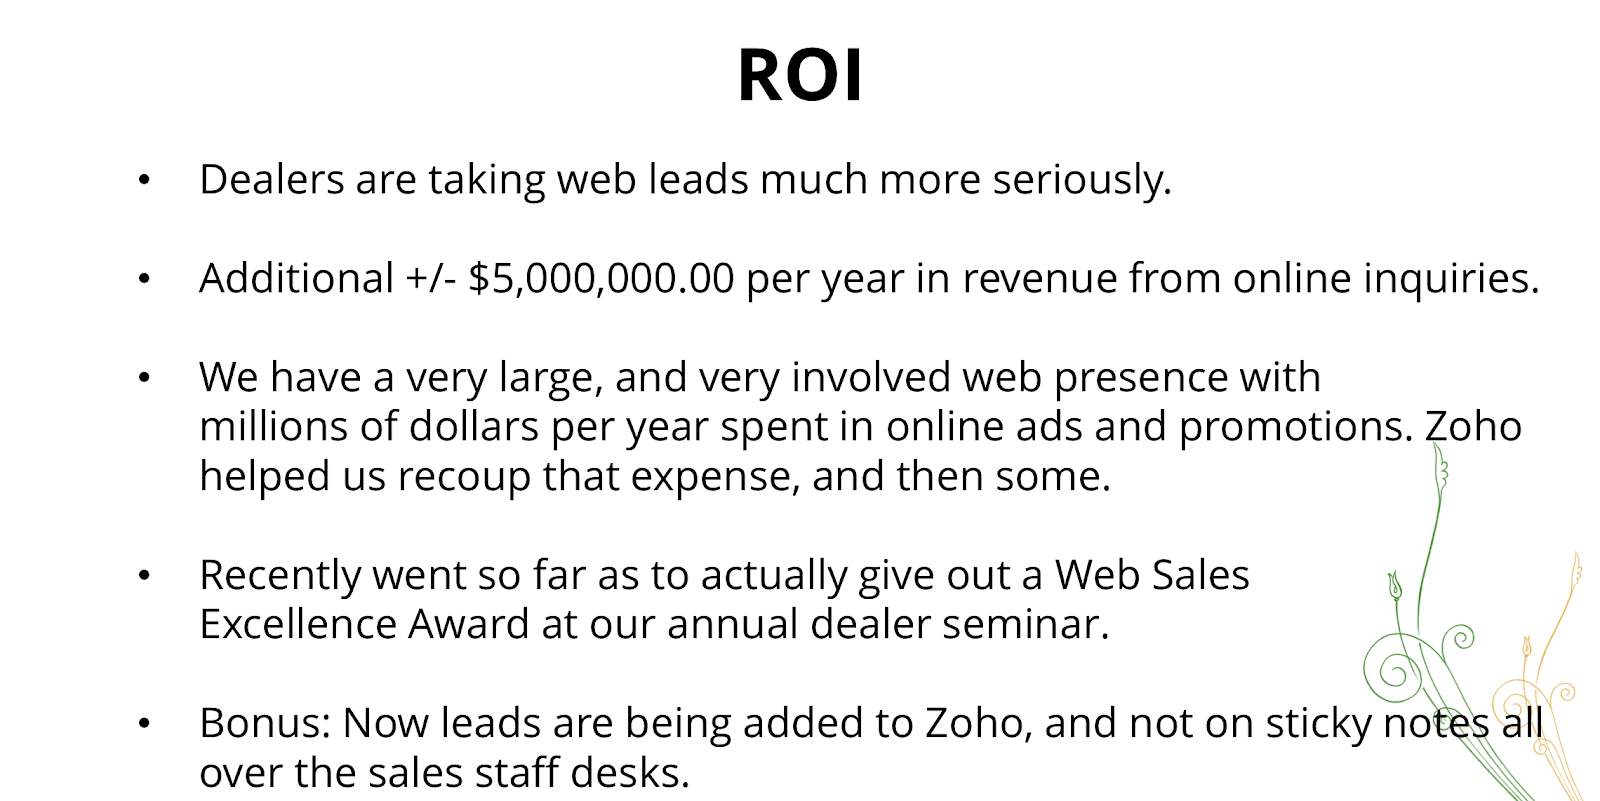 ROI for Arctic Spas using Zoho